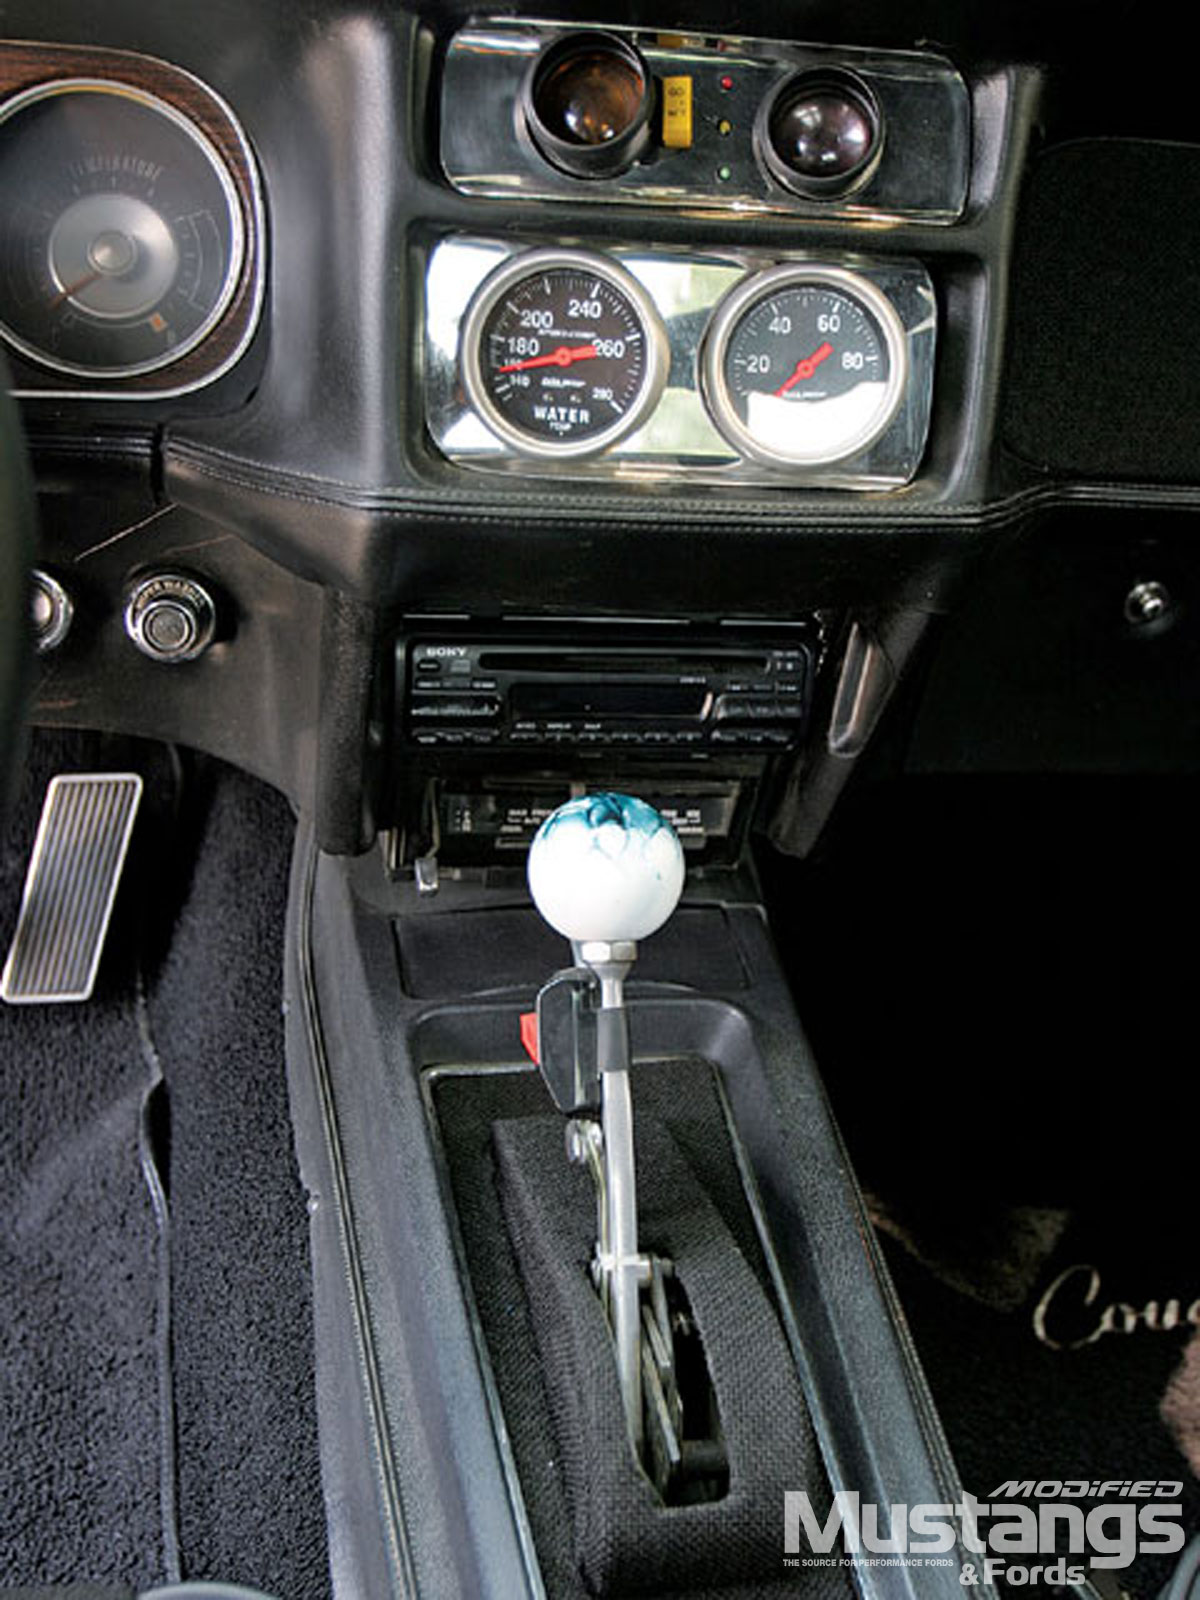 1969 Mercury Cougar Shift Knob